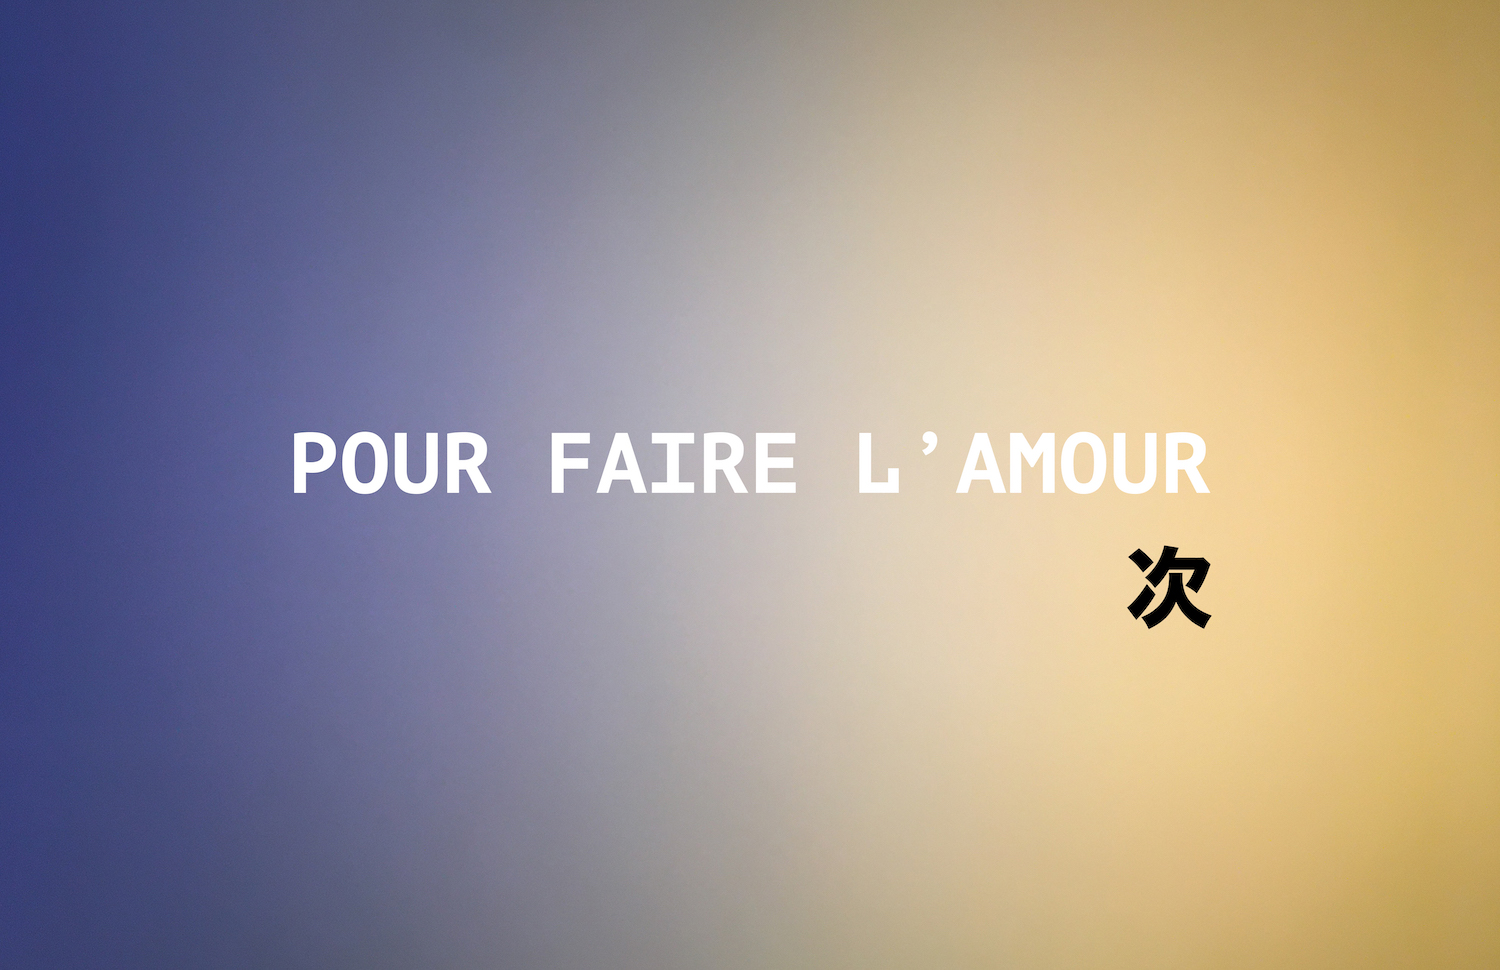 🔊 La playlist ultime pour faire l'amour